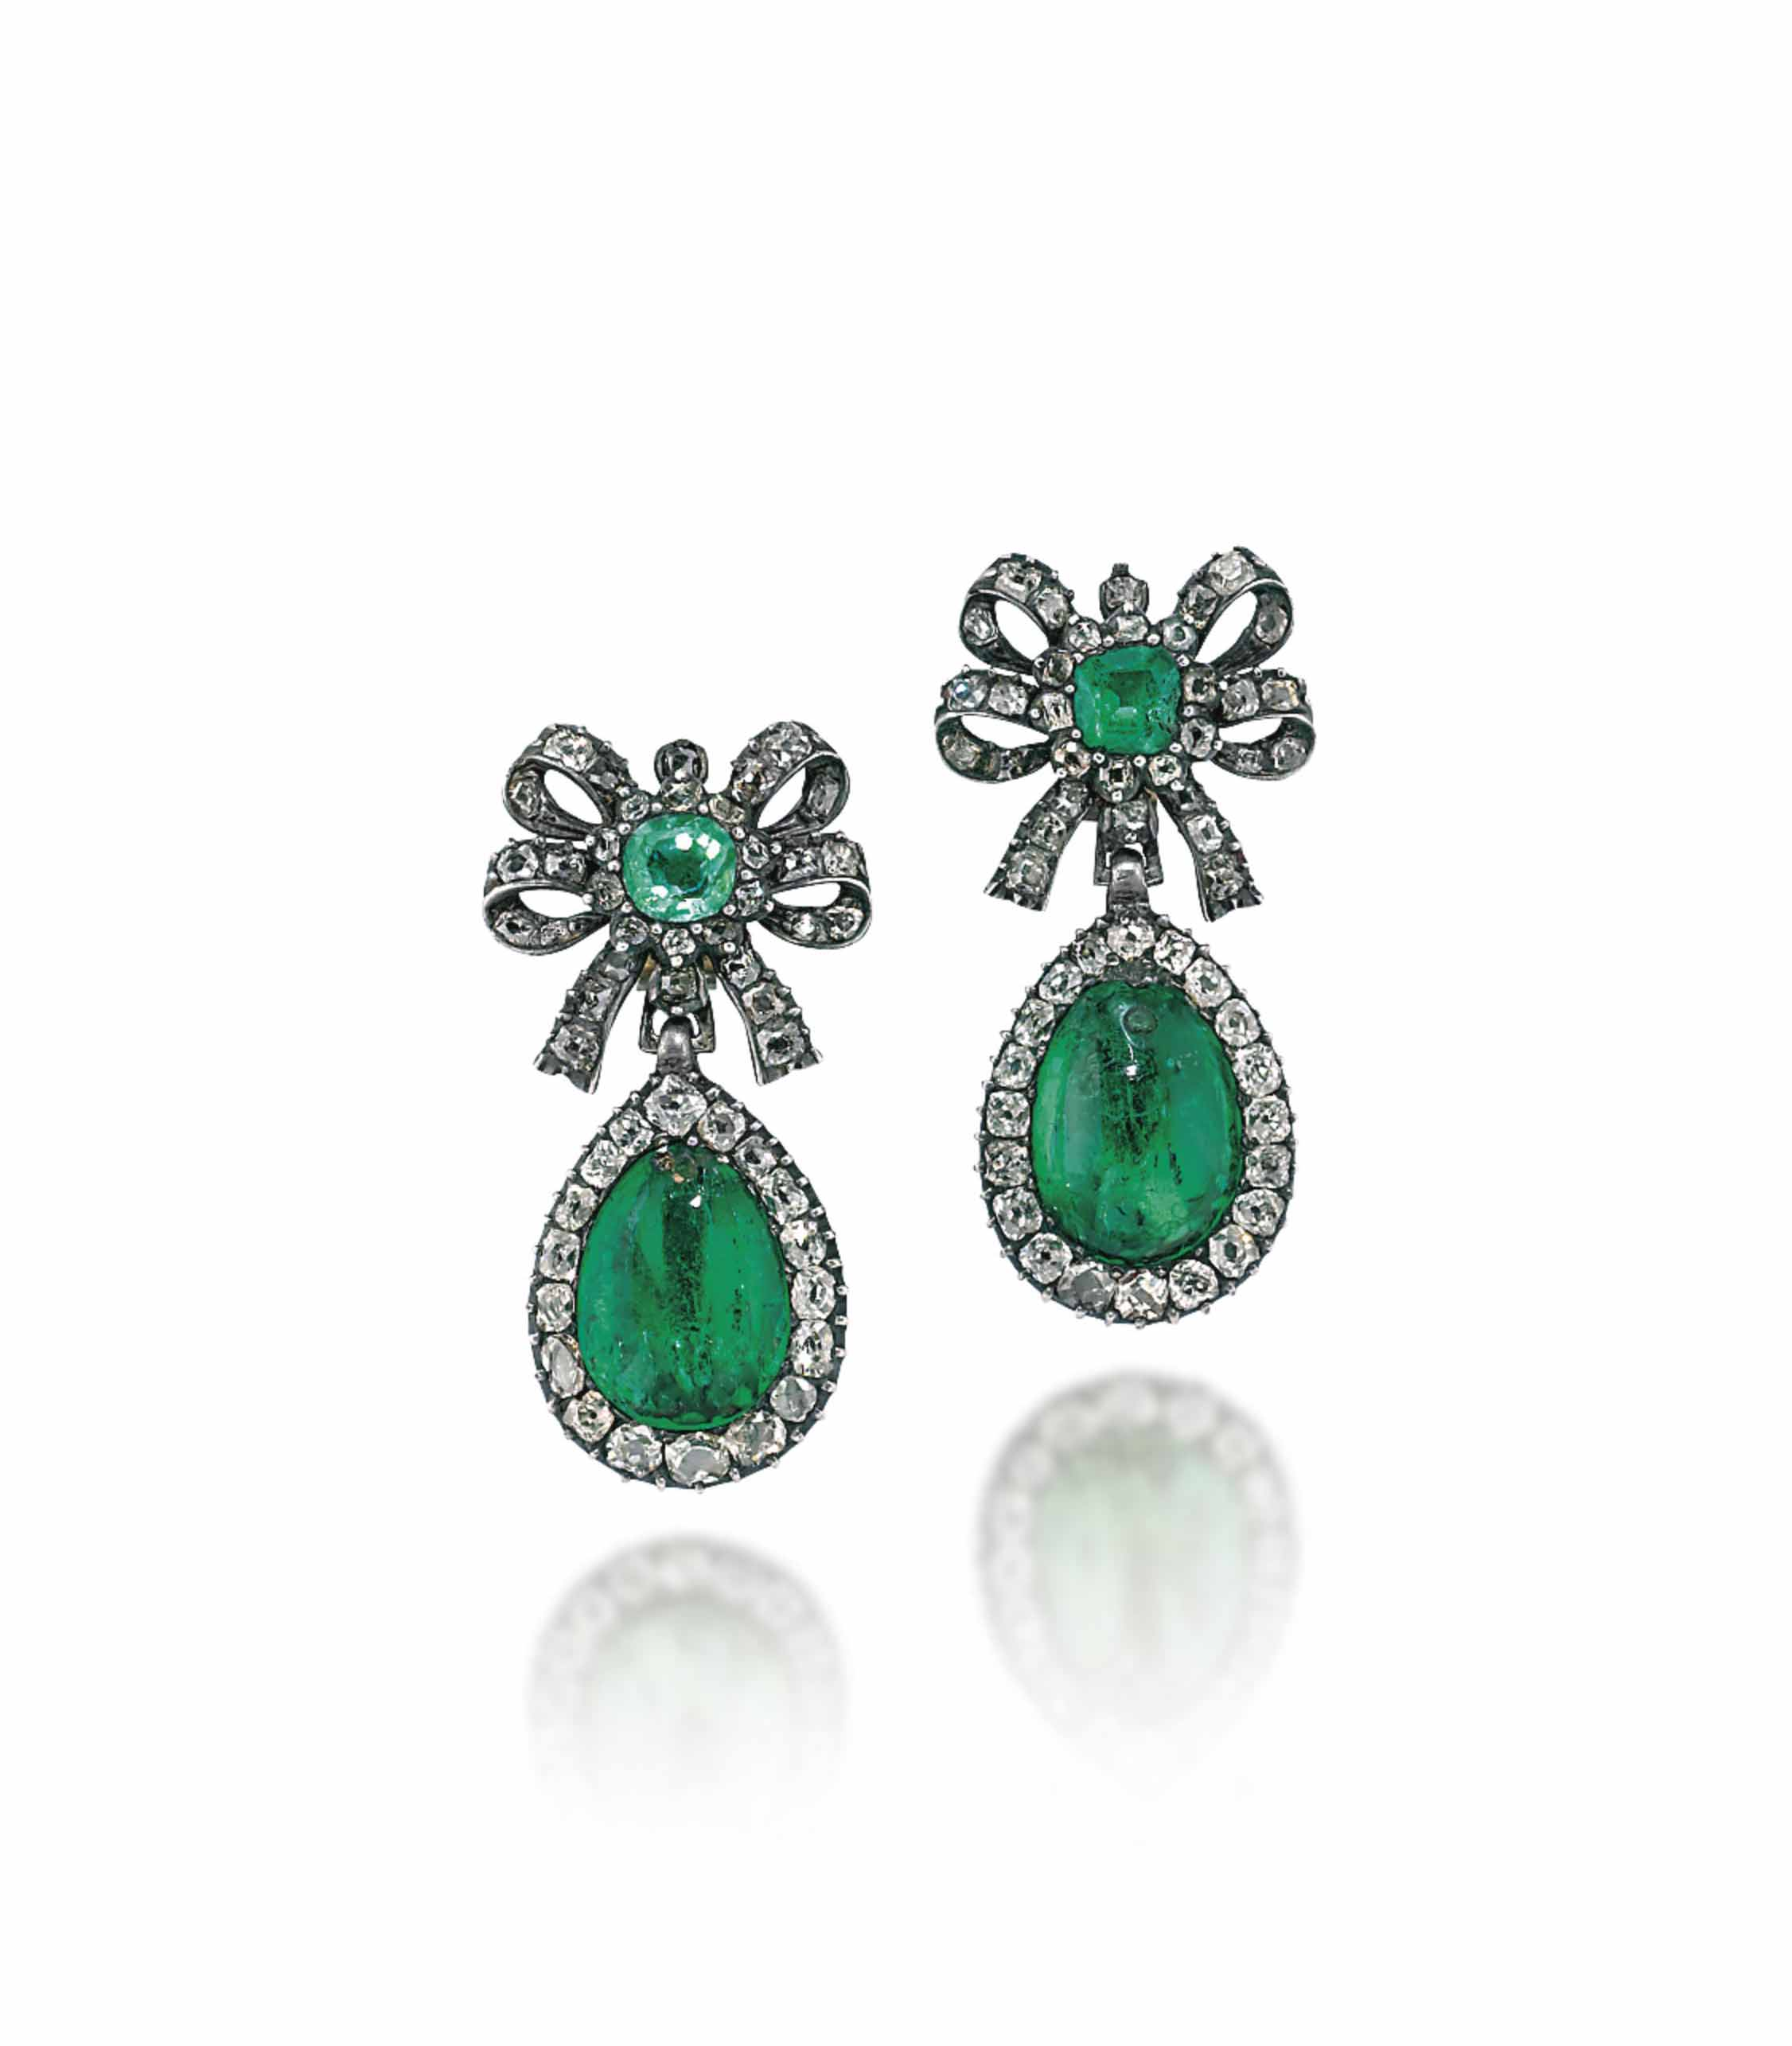 A PAIR OF LATE 18TH/EARLY 19TH CENTURY EMERALD AND DIAMOND EAR PENDANTS